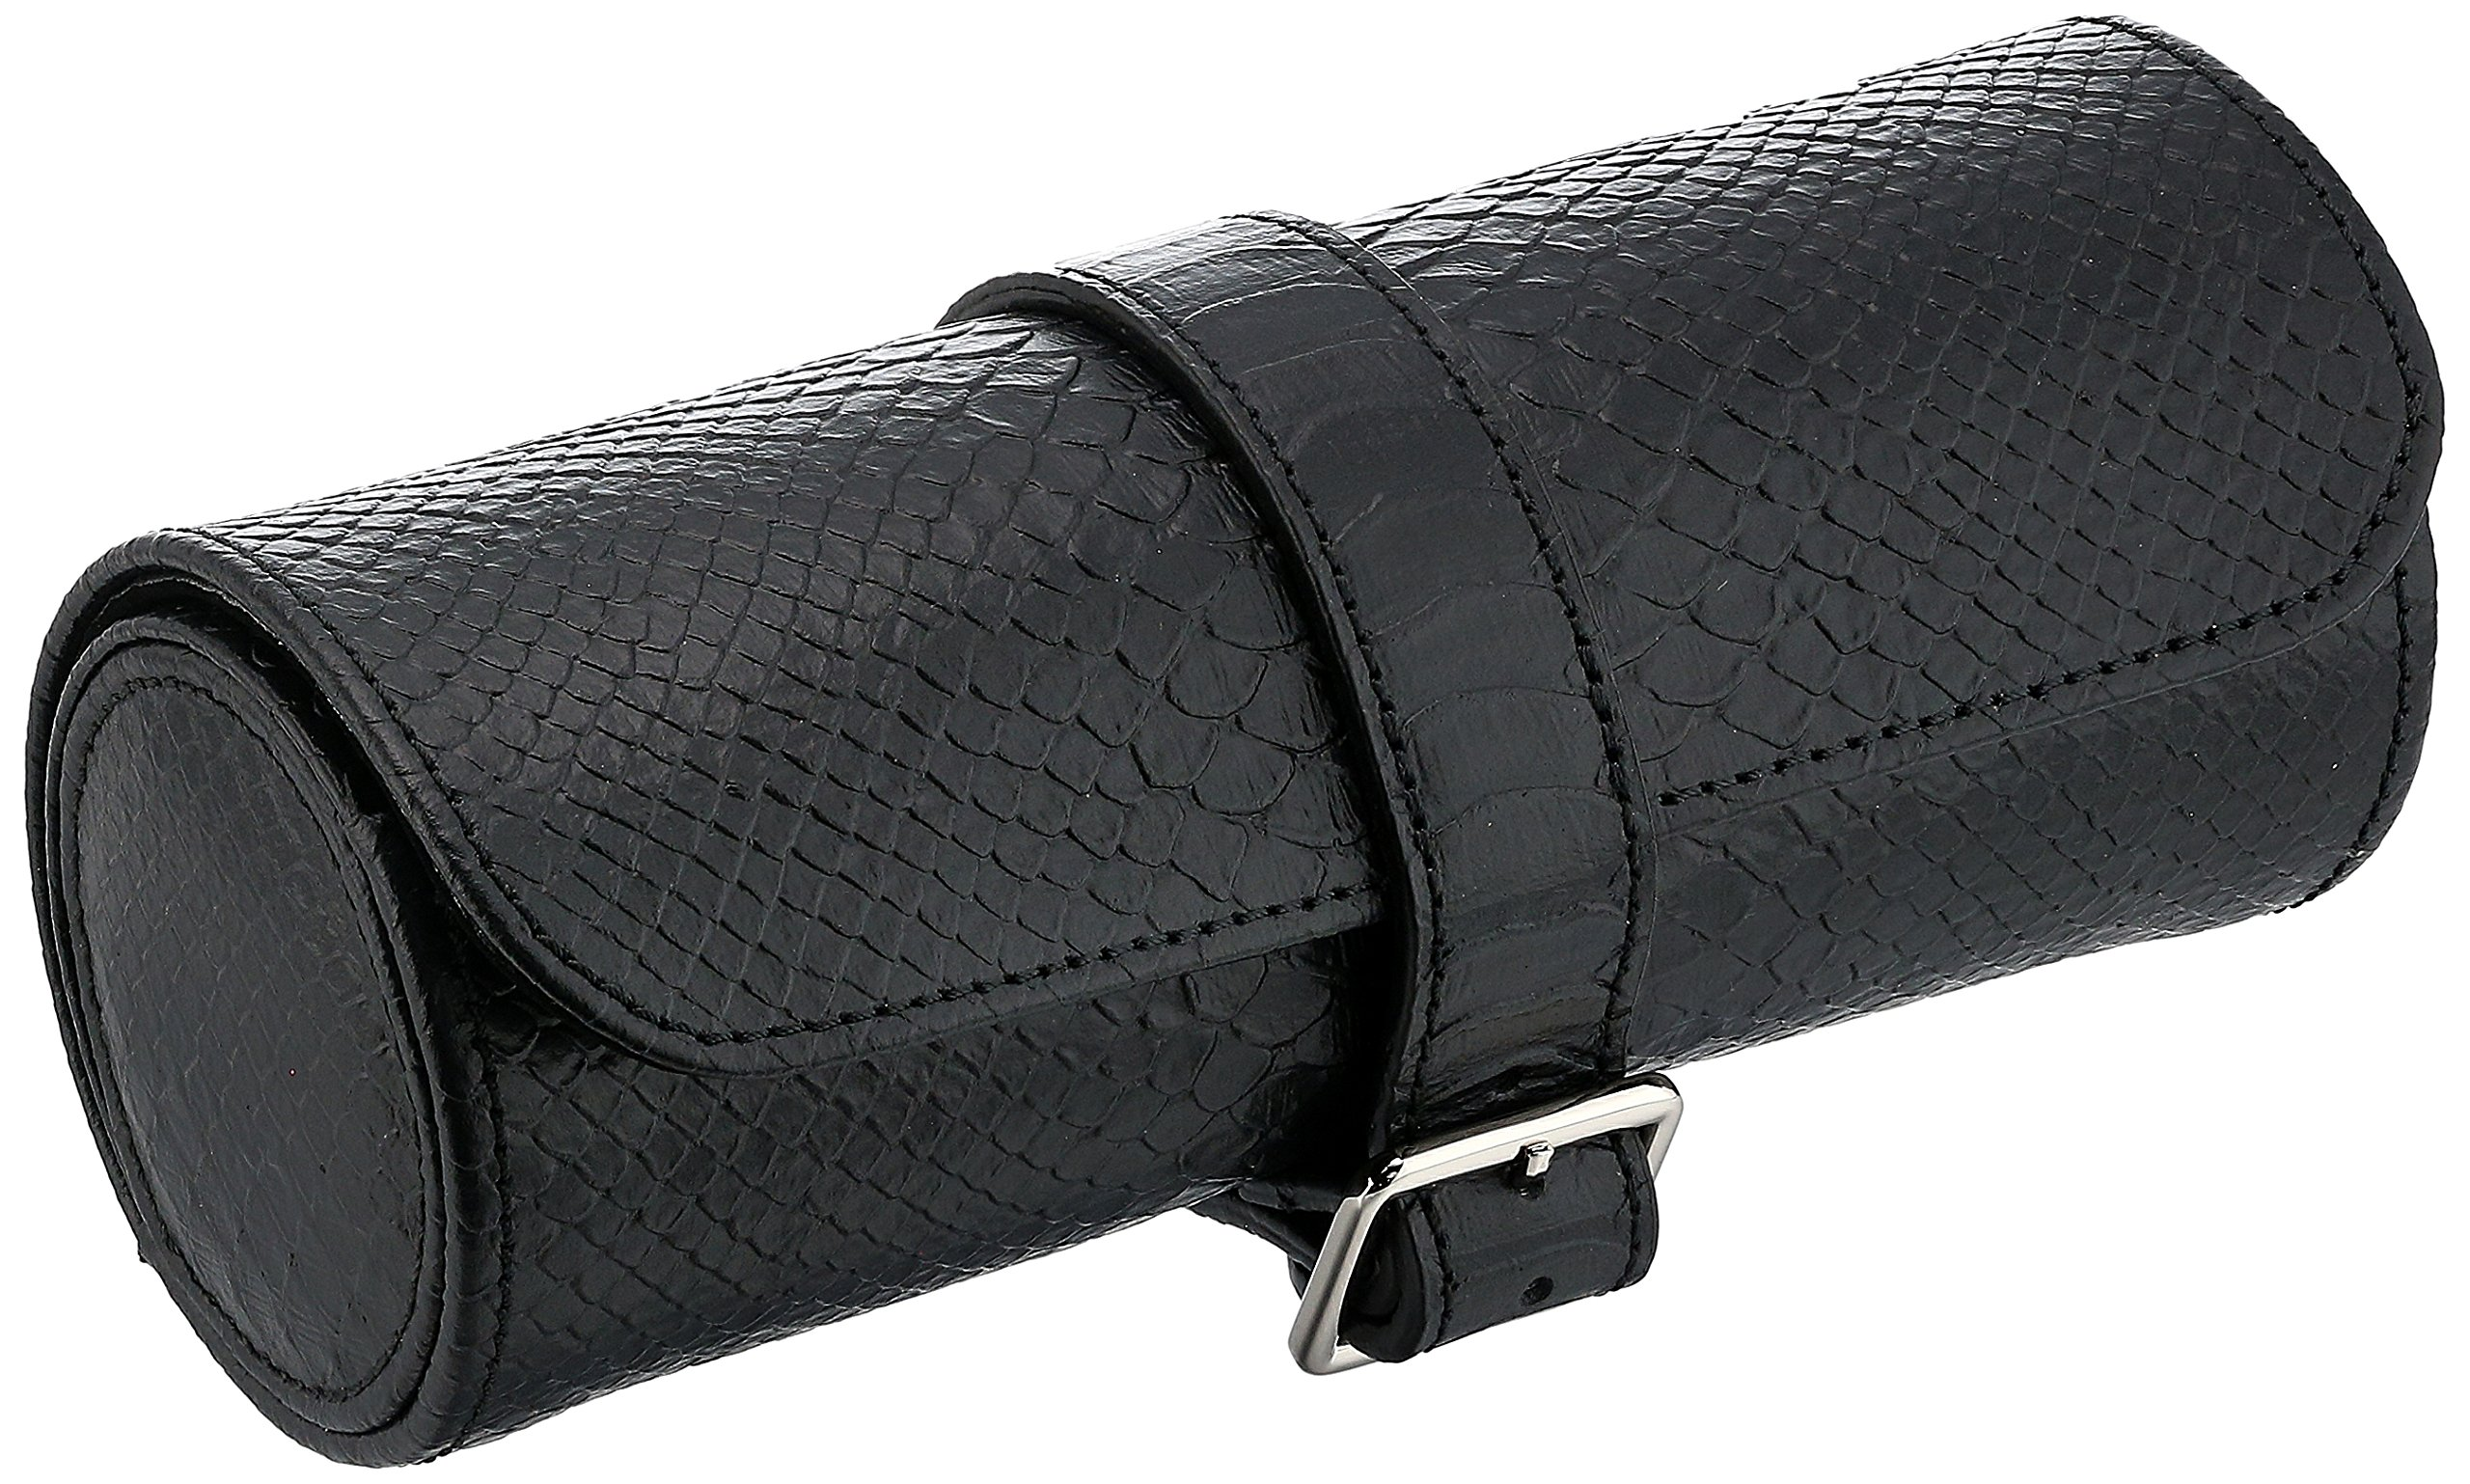 WOLF 462820 Leather Lizard Watch Case